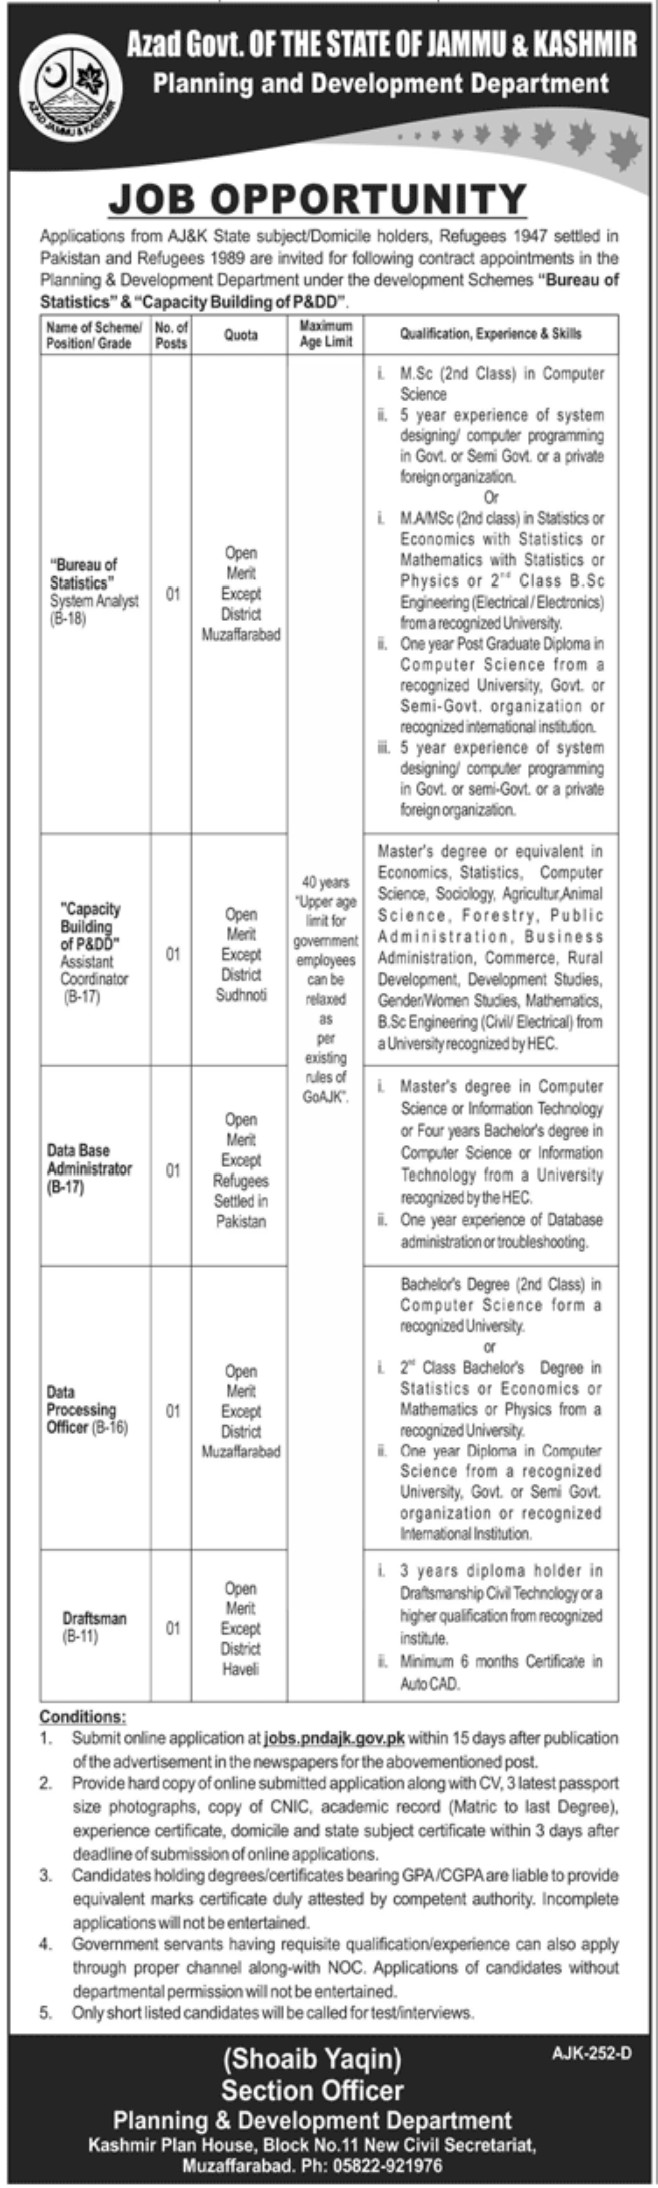 Azad Govt of the State of Jammu & Kashmir (Planning and Development Department) Jobs